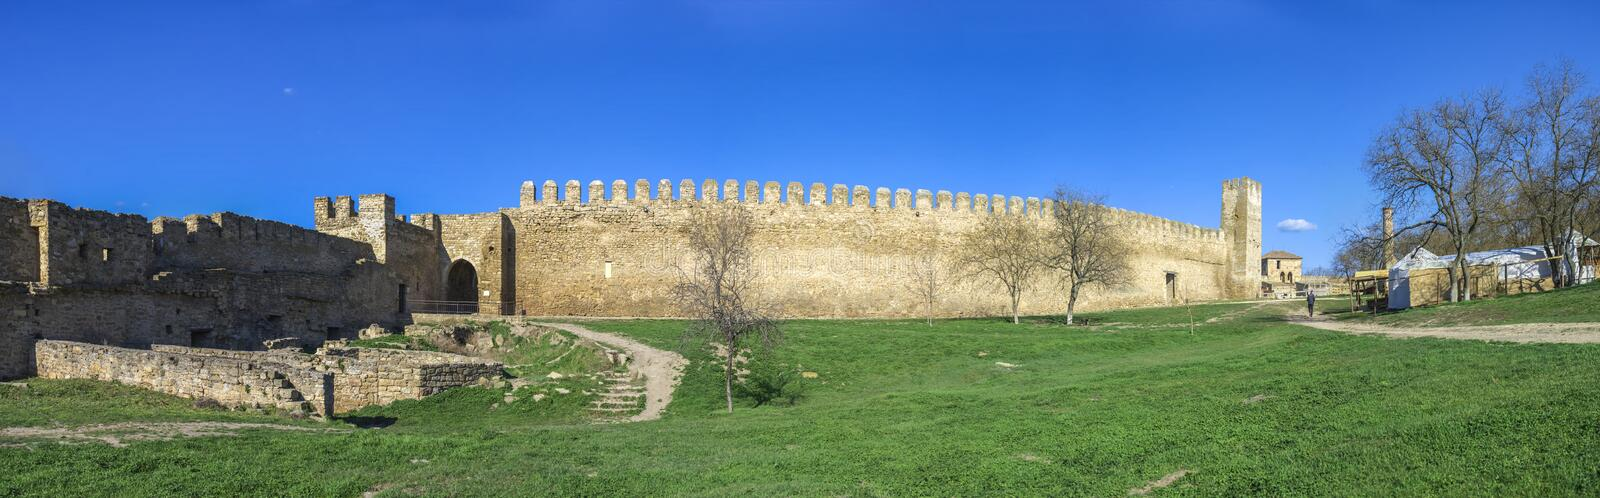 Fortress Walls of the Akkerman Citadel in Ukraine royalty free stock photography